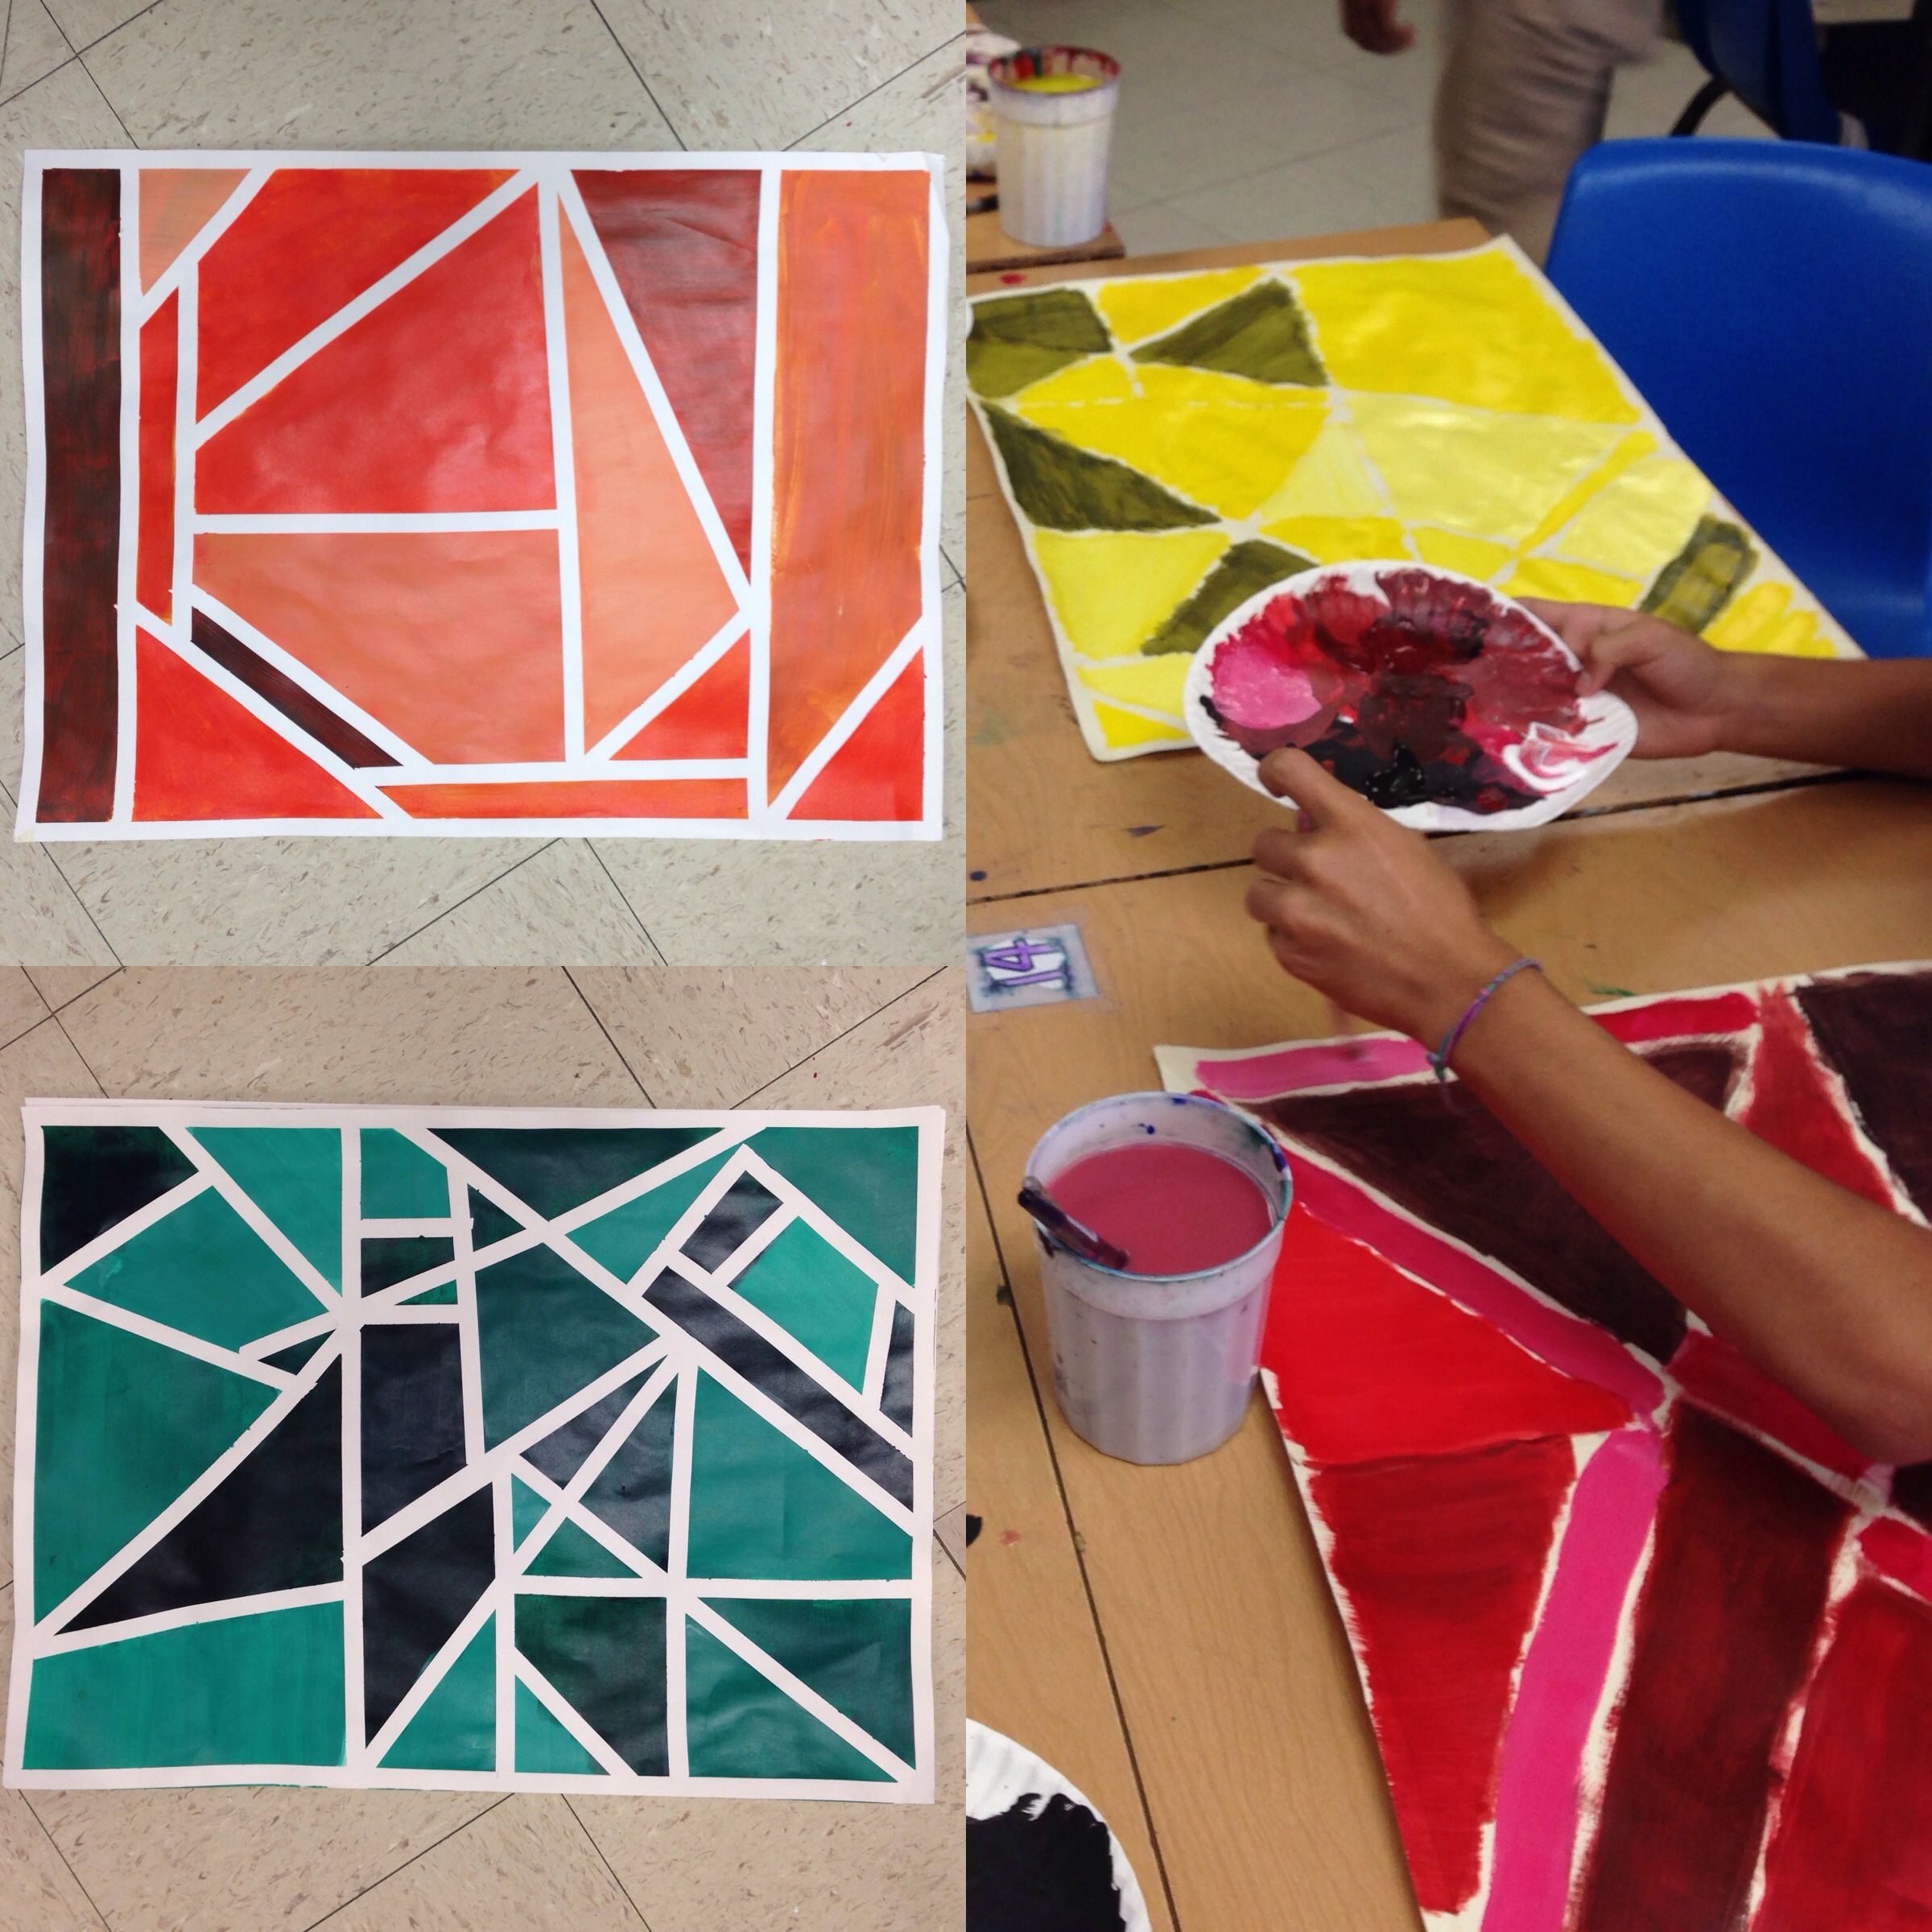 Color value art projects - Tine Shade Paintings Add Zentangle Drawings In White Tape Areas Art Project Ideas Ii Pinterest Zentangle Drawings Students And Drawings